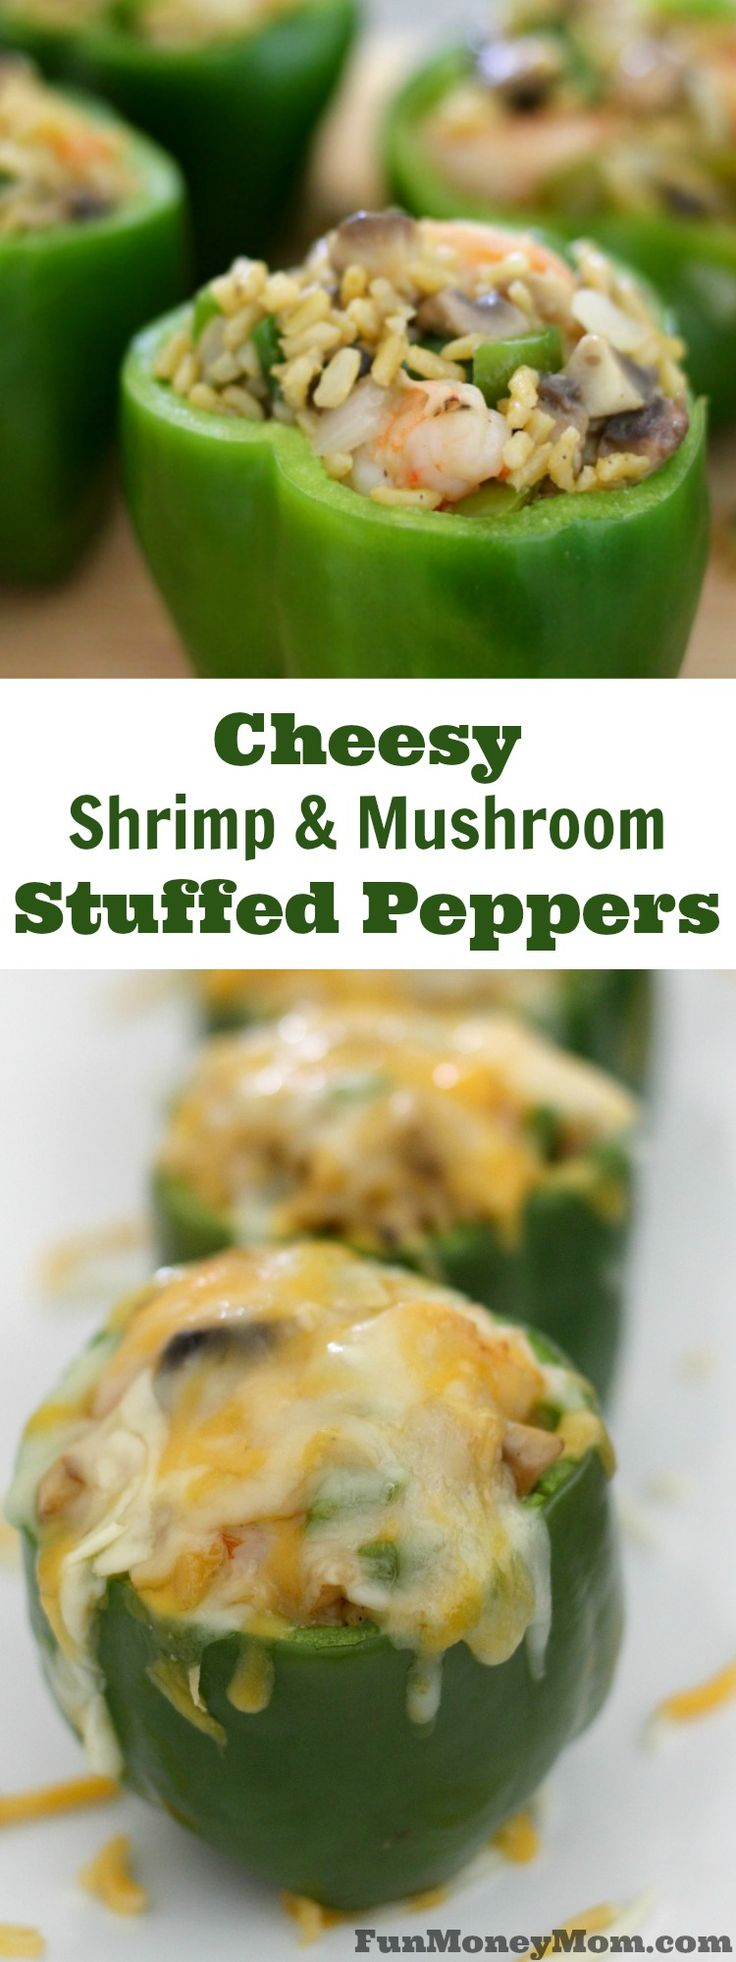 Want a delicious dinner recipe that the kids can help with? They'll have a blast making these cheesy shrimp and mushroom stuffed peppers! #ad